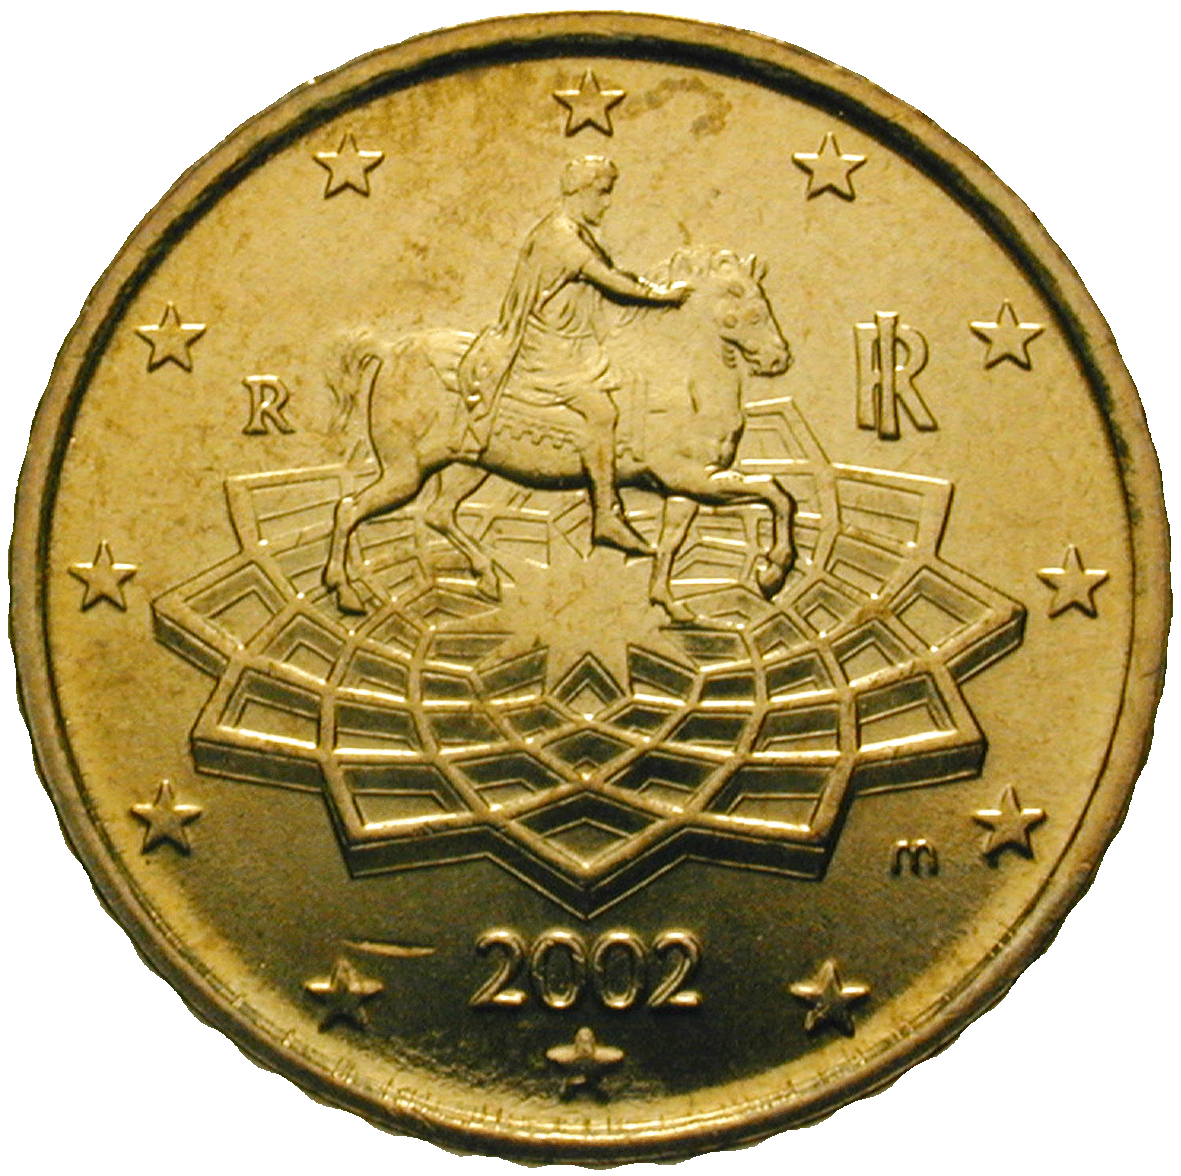 Republic of Italy, 50 Euro Cent 2002 (obverse)